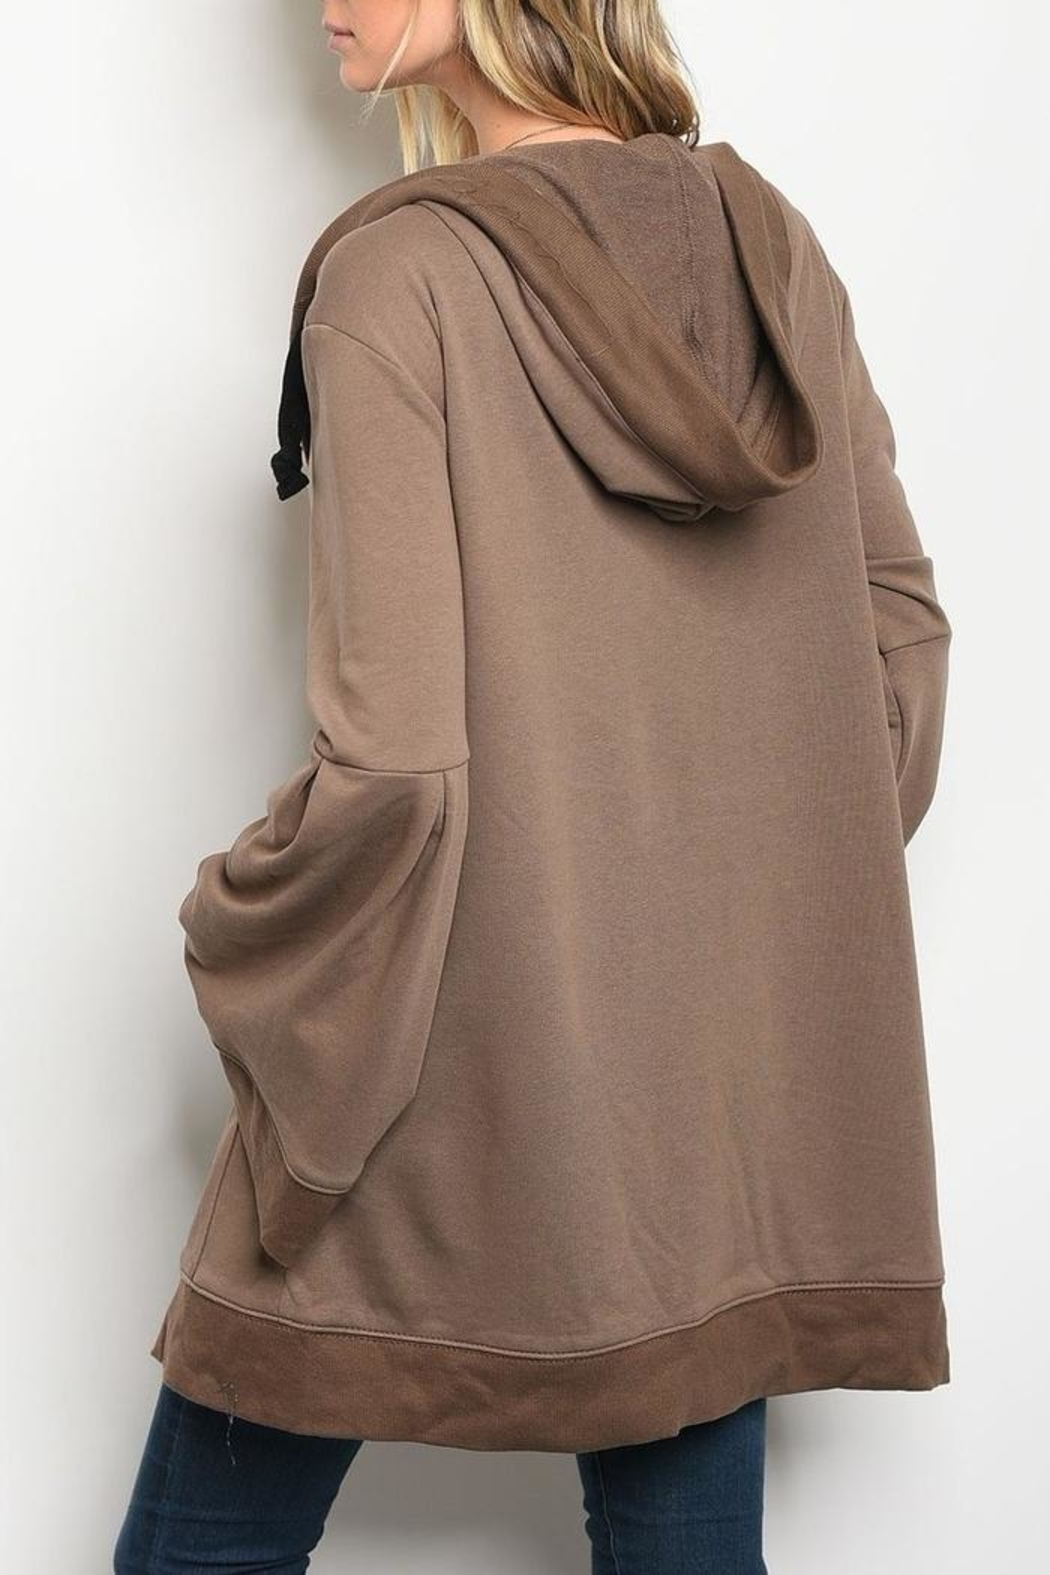 LoveRiche Mocha Hooded Cardigan - Front Full Image